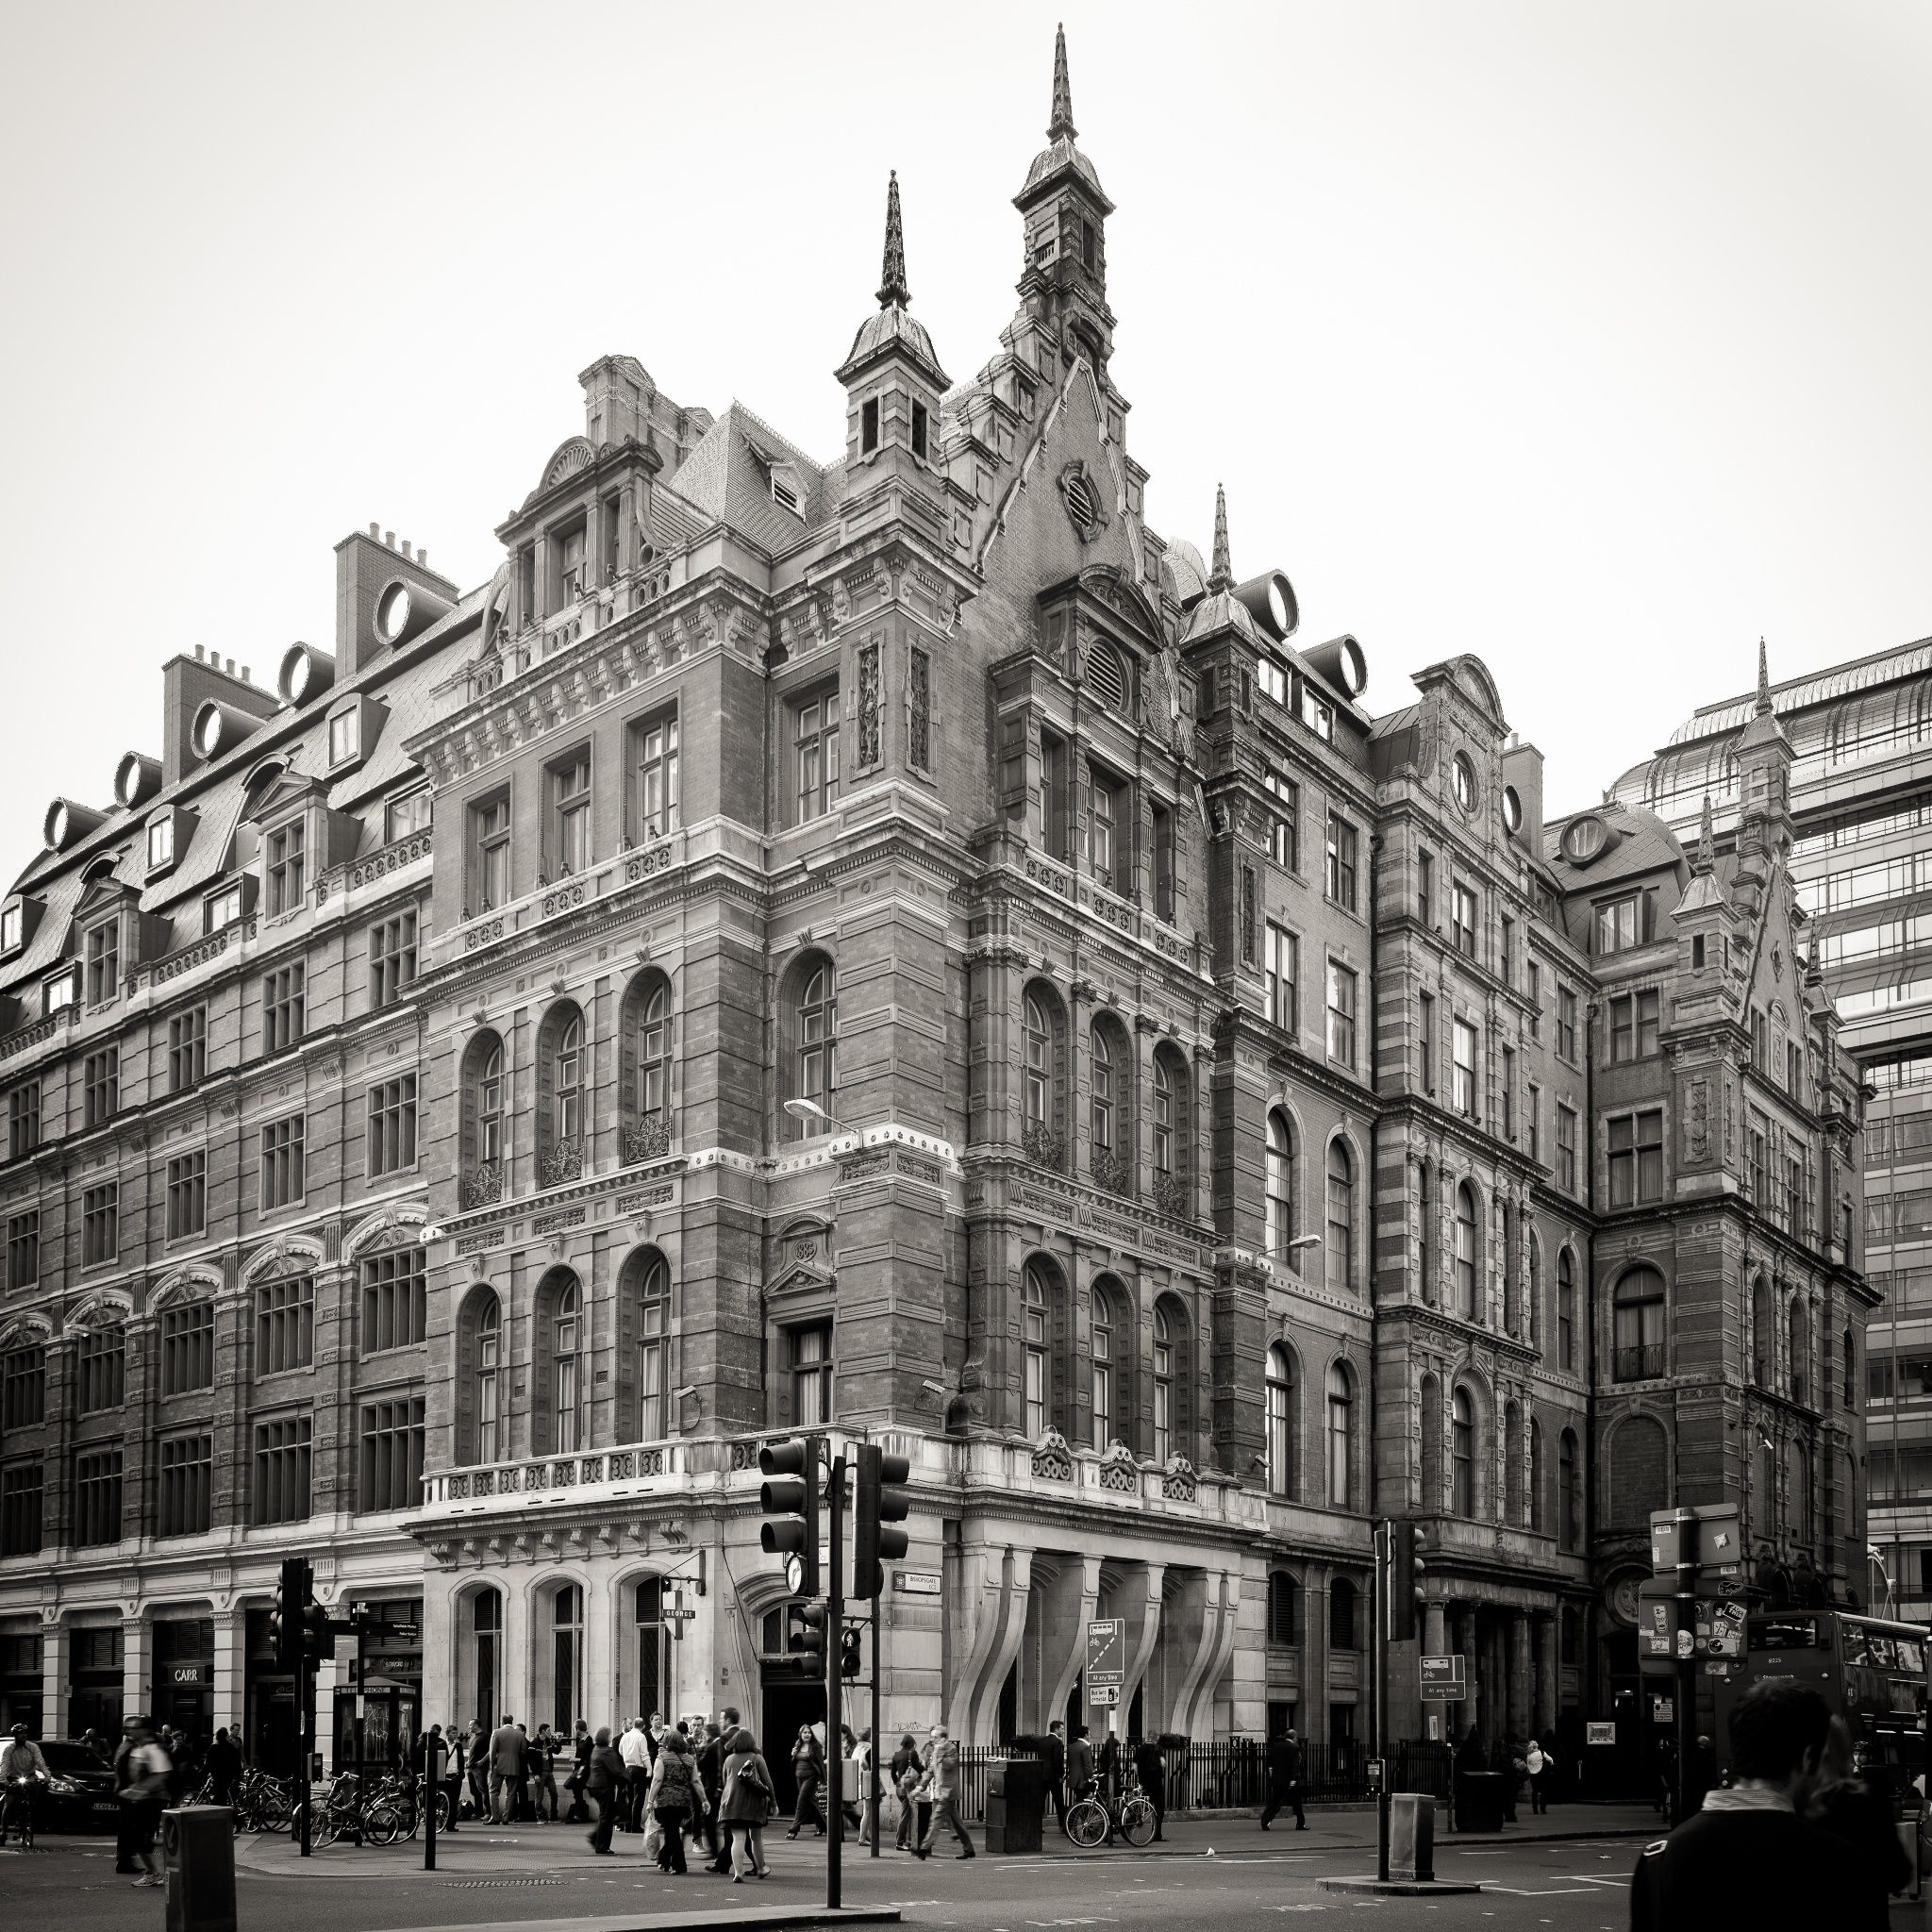 Bishopsgate, London by Abraham Figueiredo on 500px